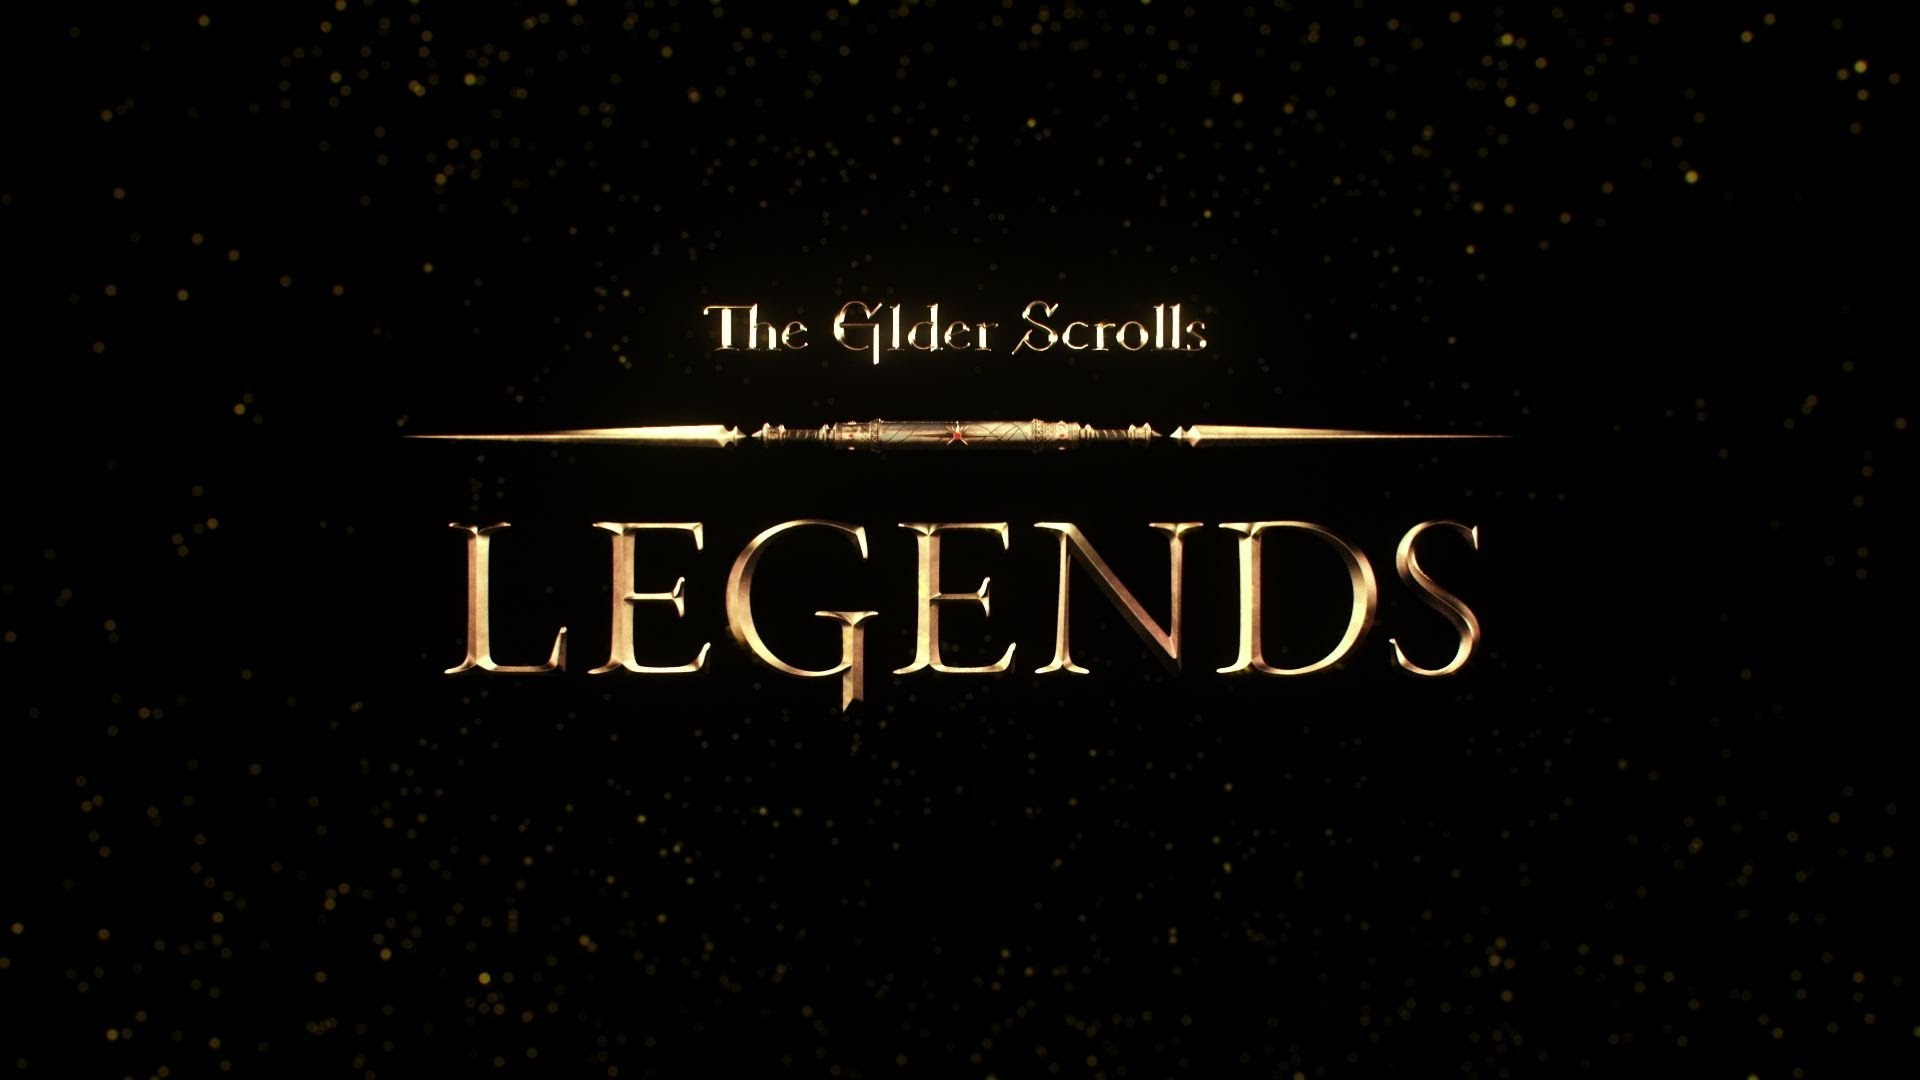 Вышла версия игры The Elder Scrolls: Legends для компьютера